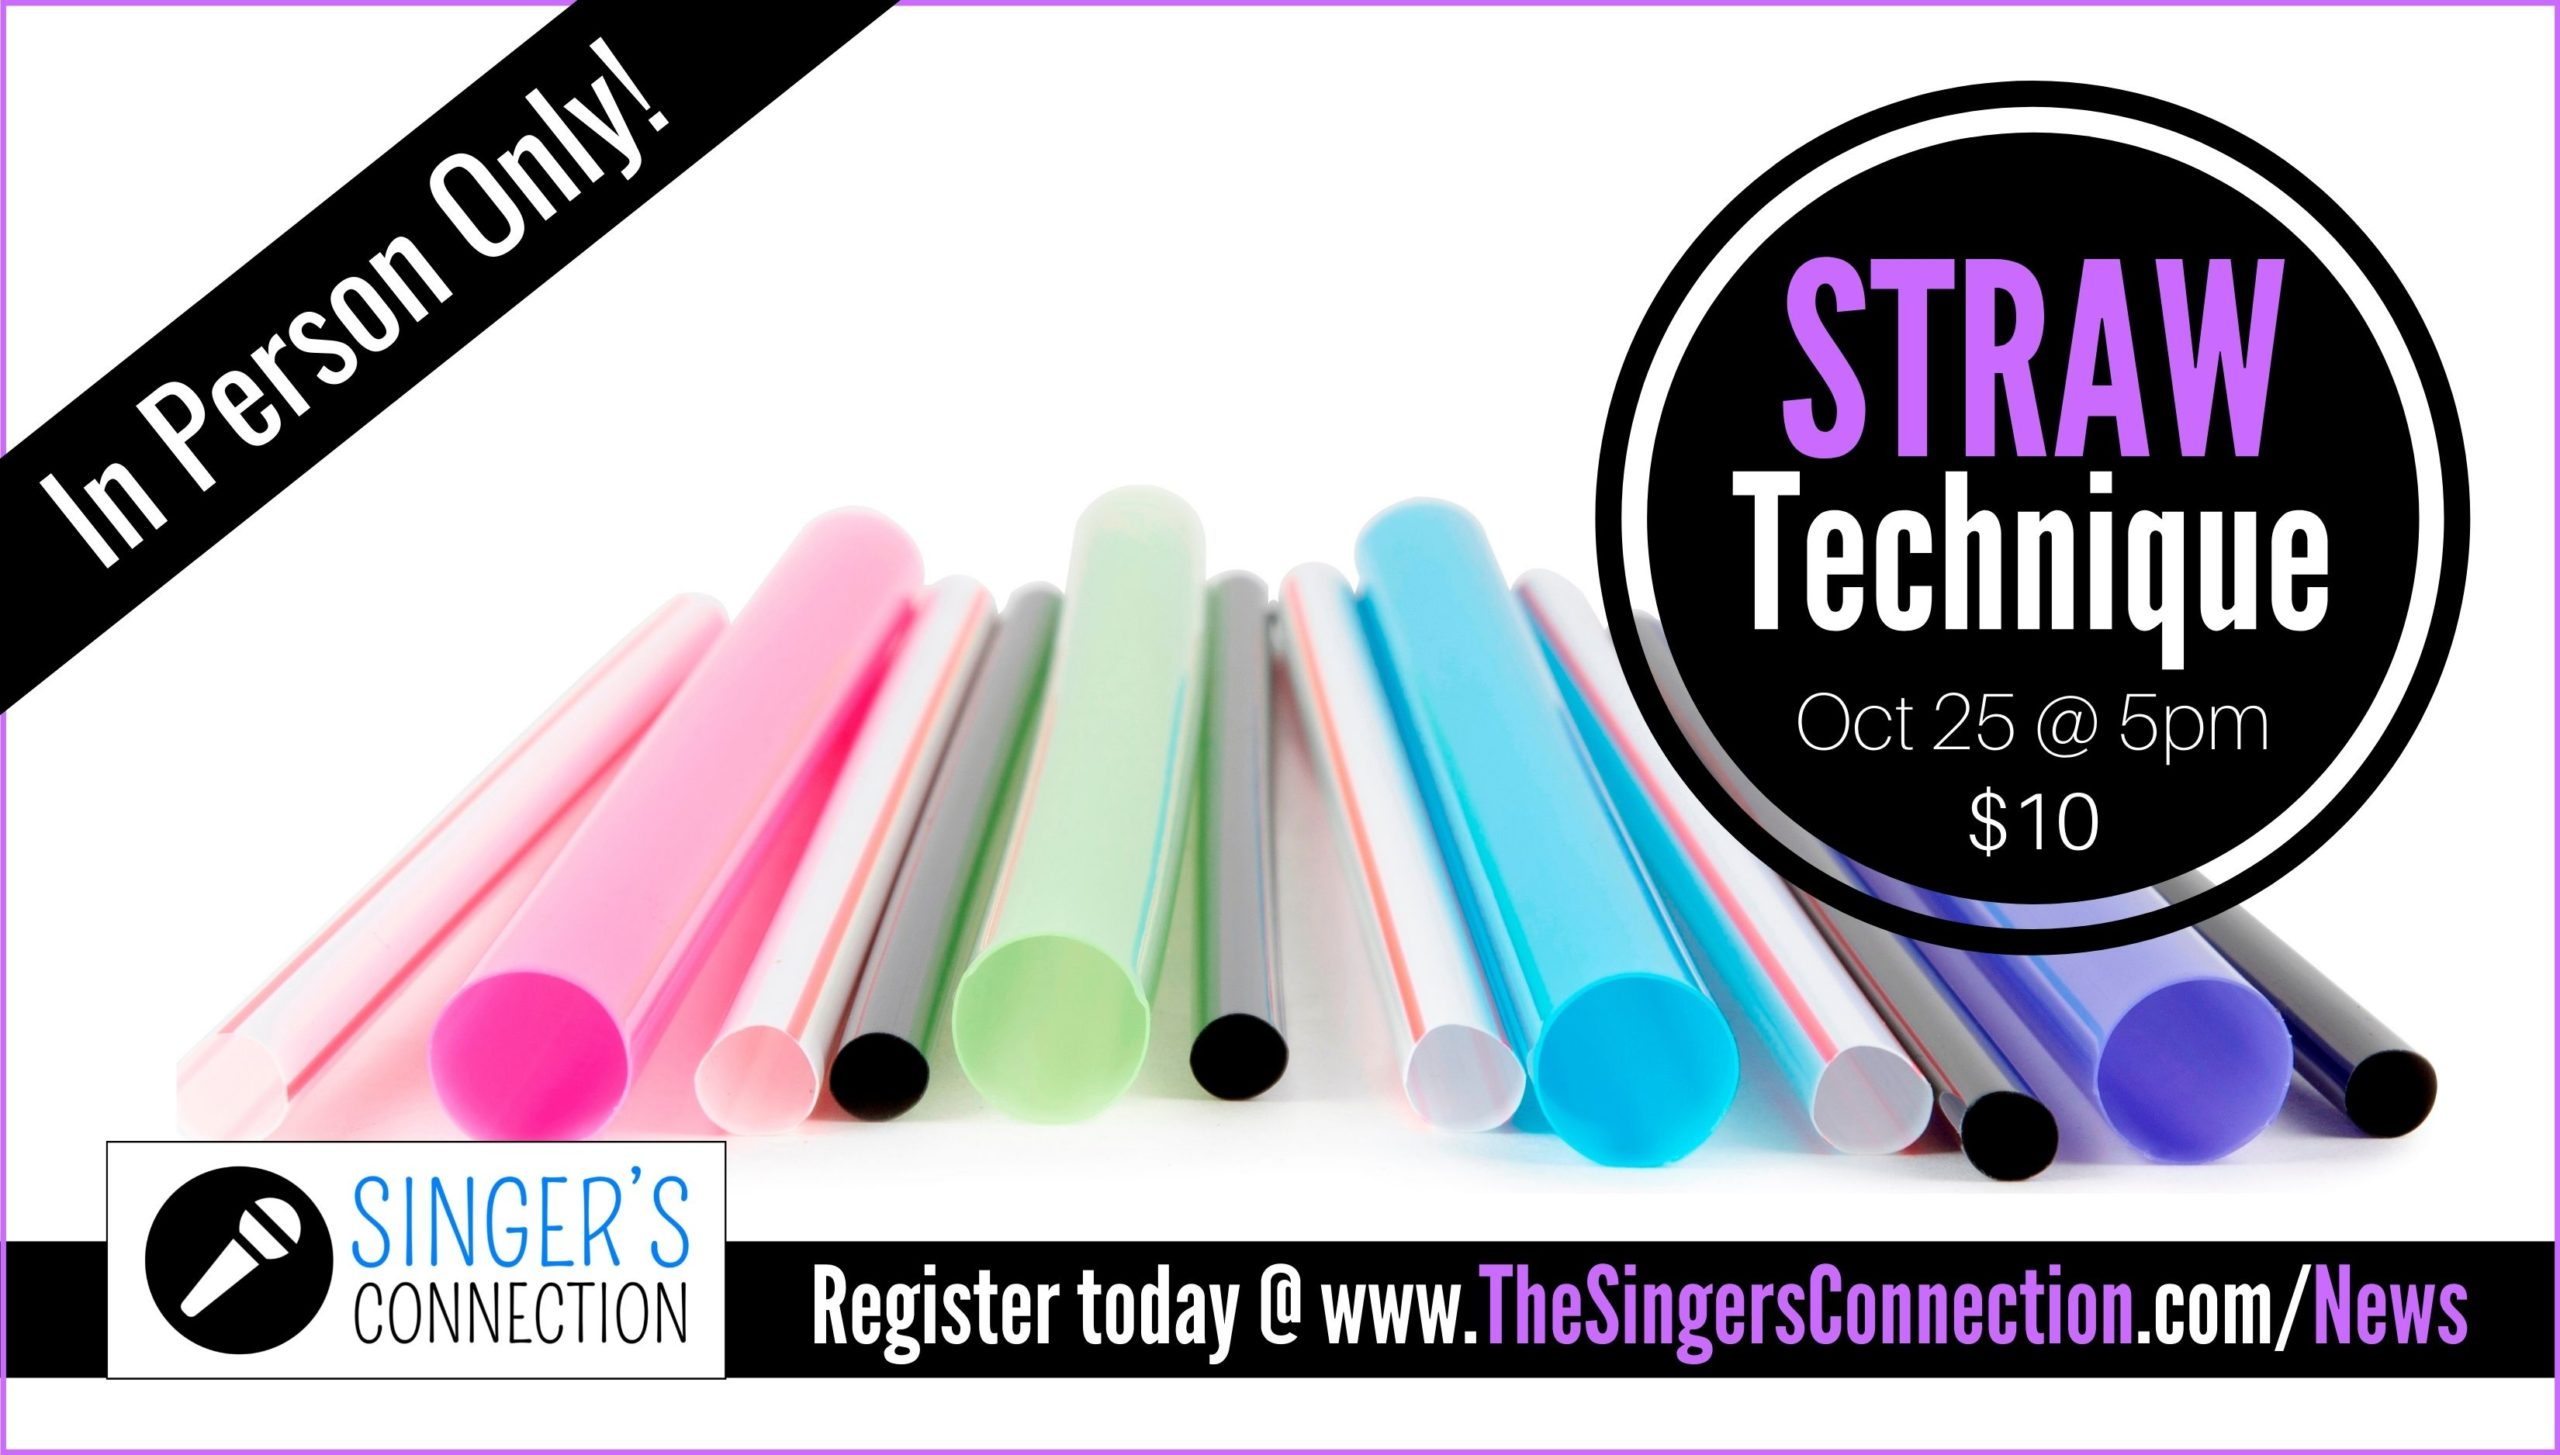 Learn anti-inflammatory exercises using a simple coffee stirrer straw!